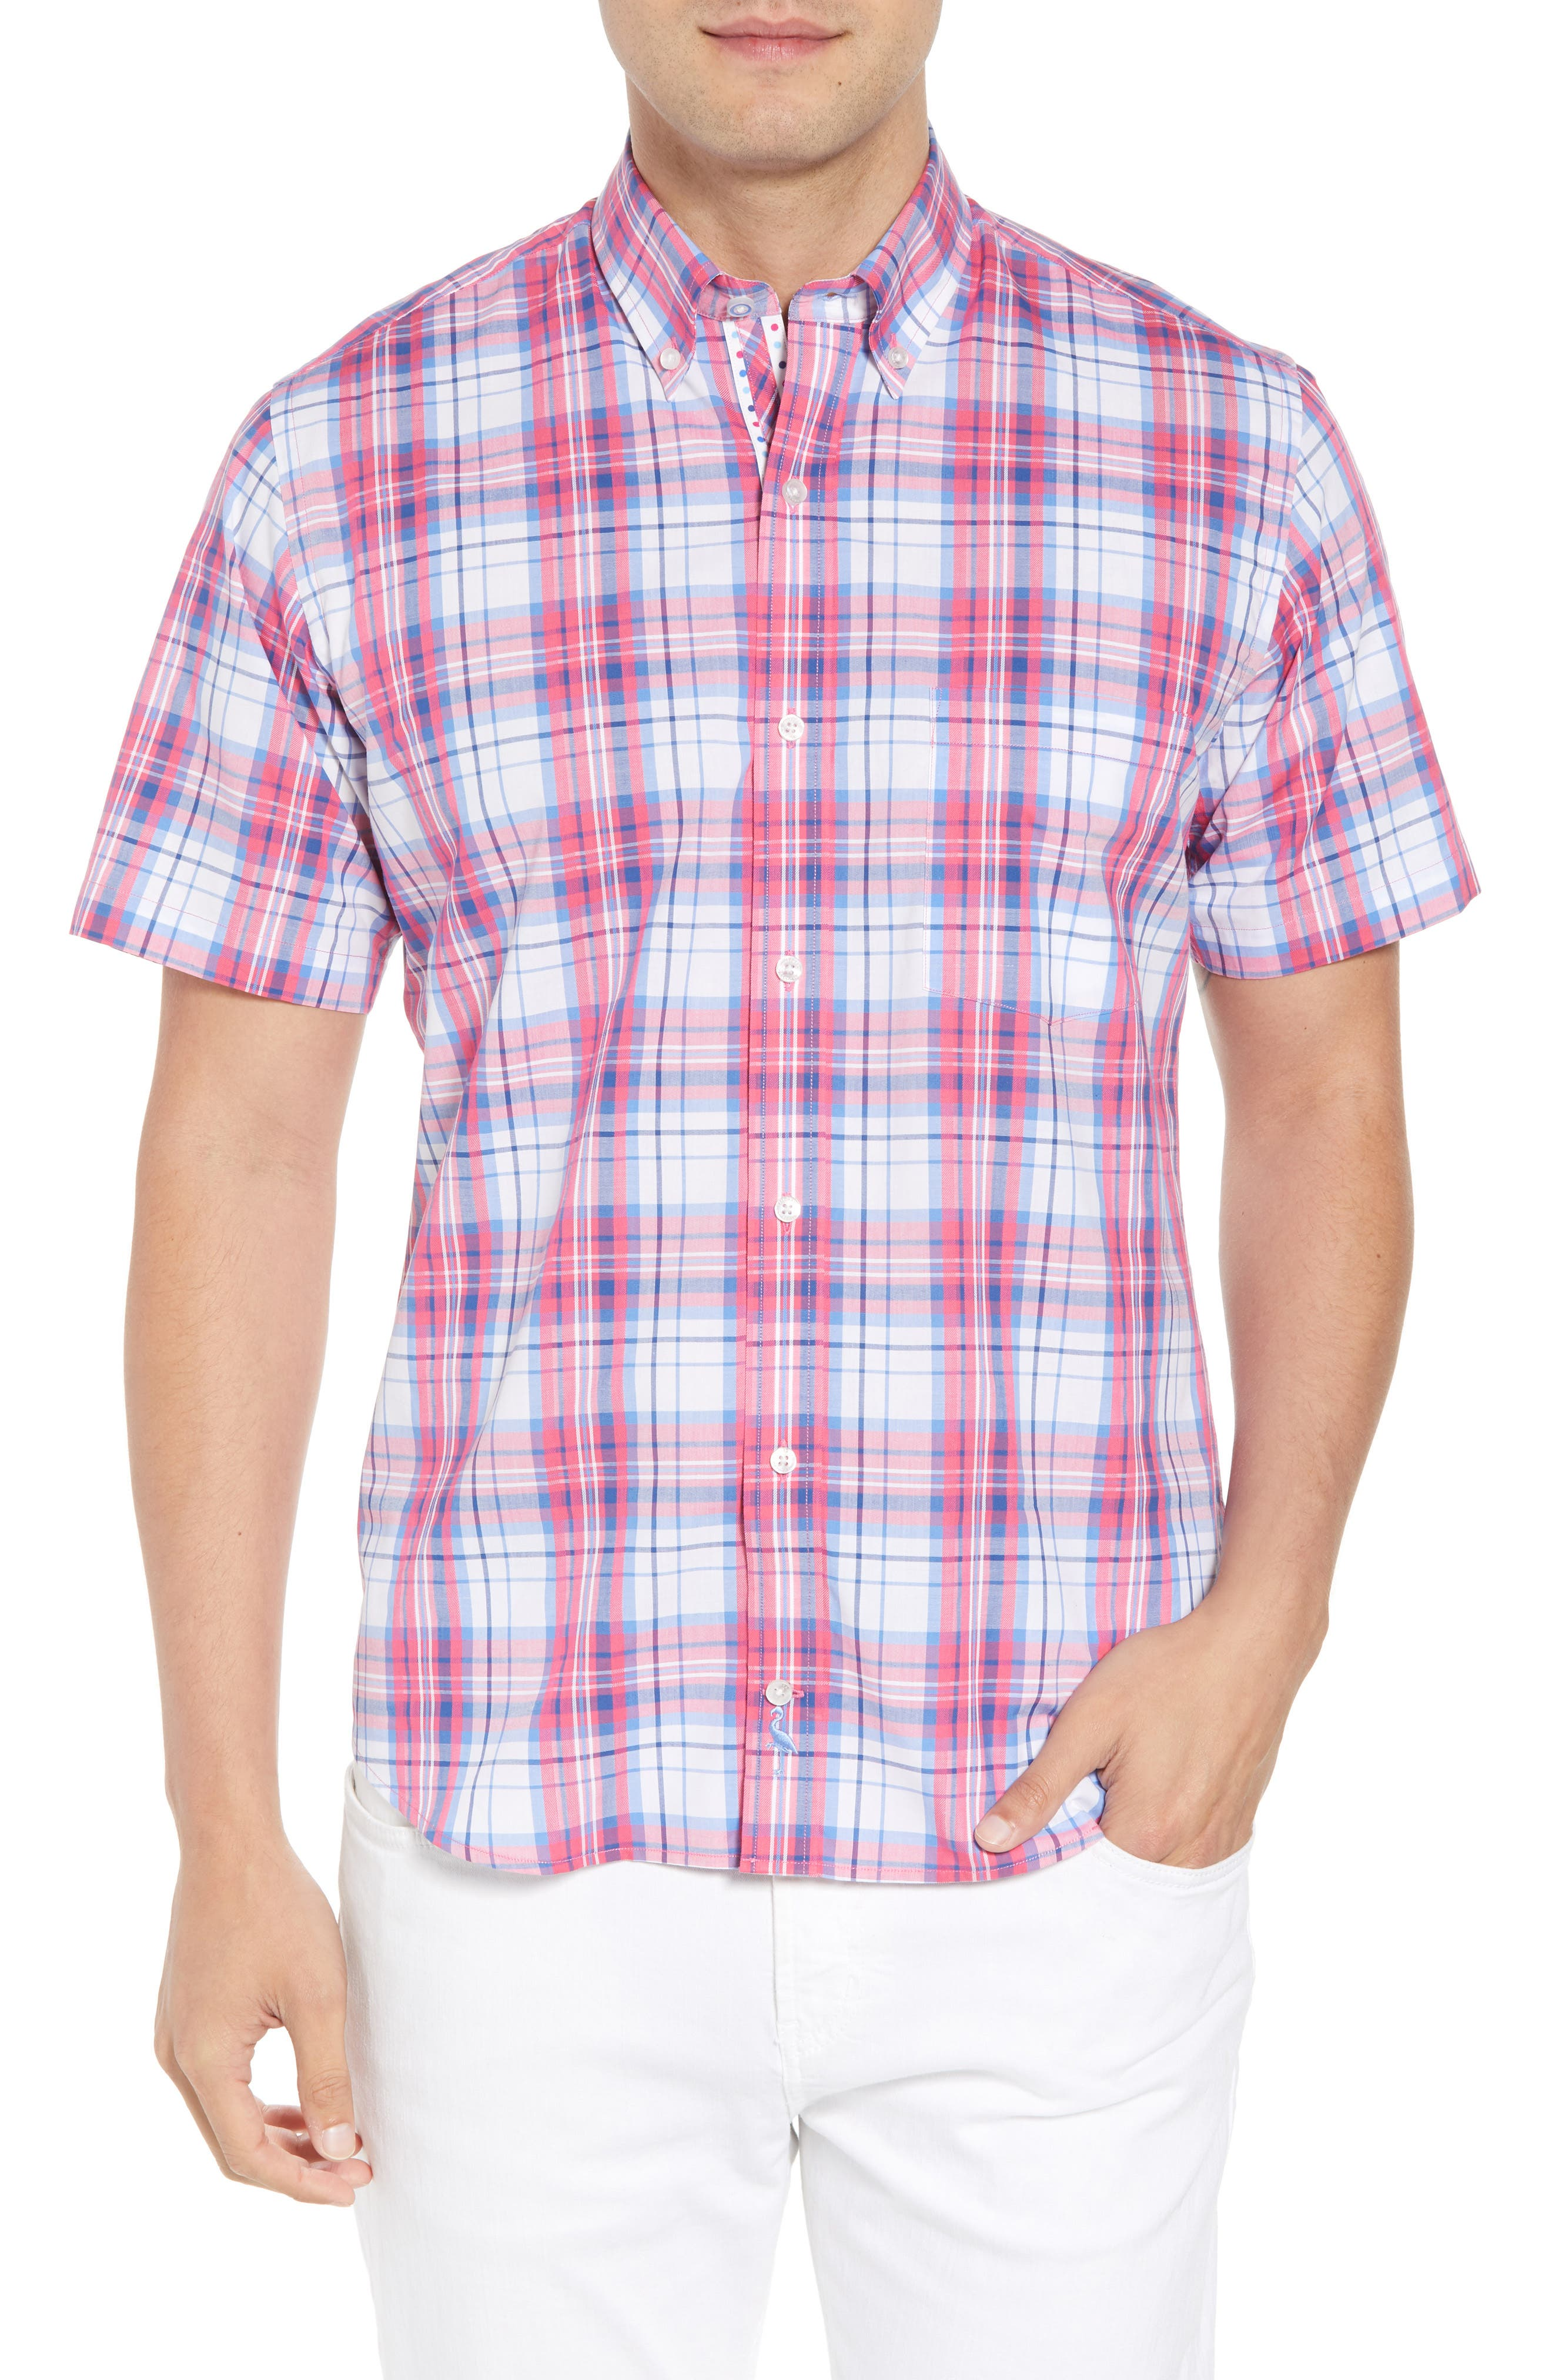 Alesso Regular Fit Plaid Sport Shirt,                         Main,                         color, Coral